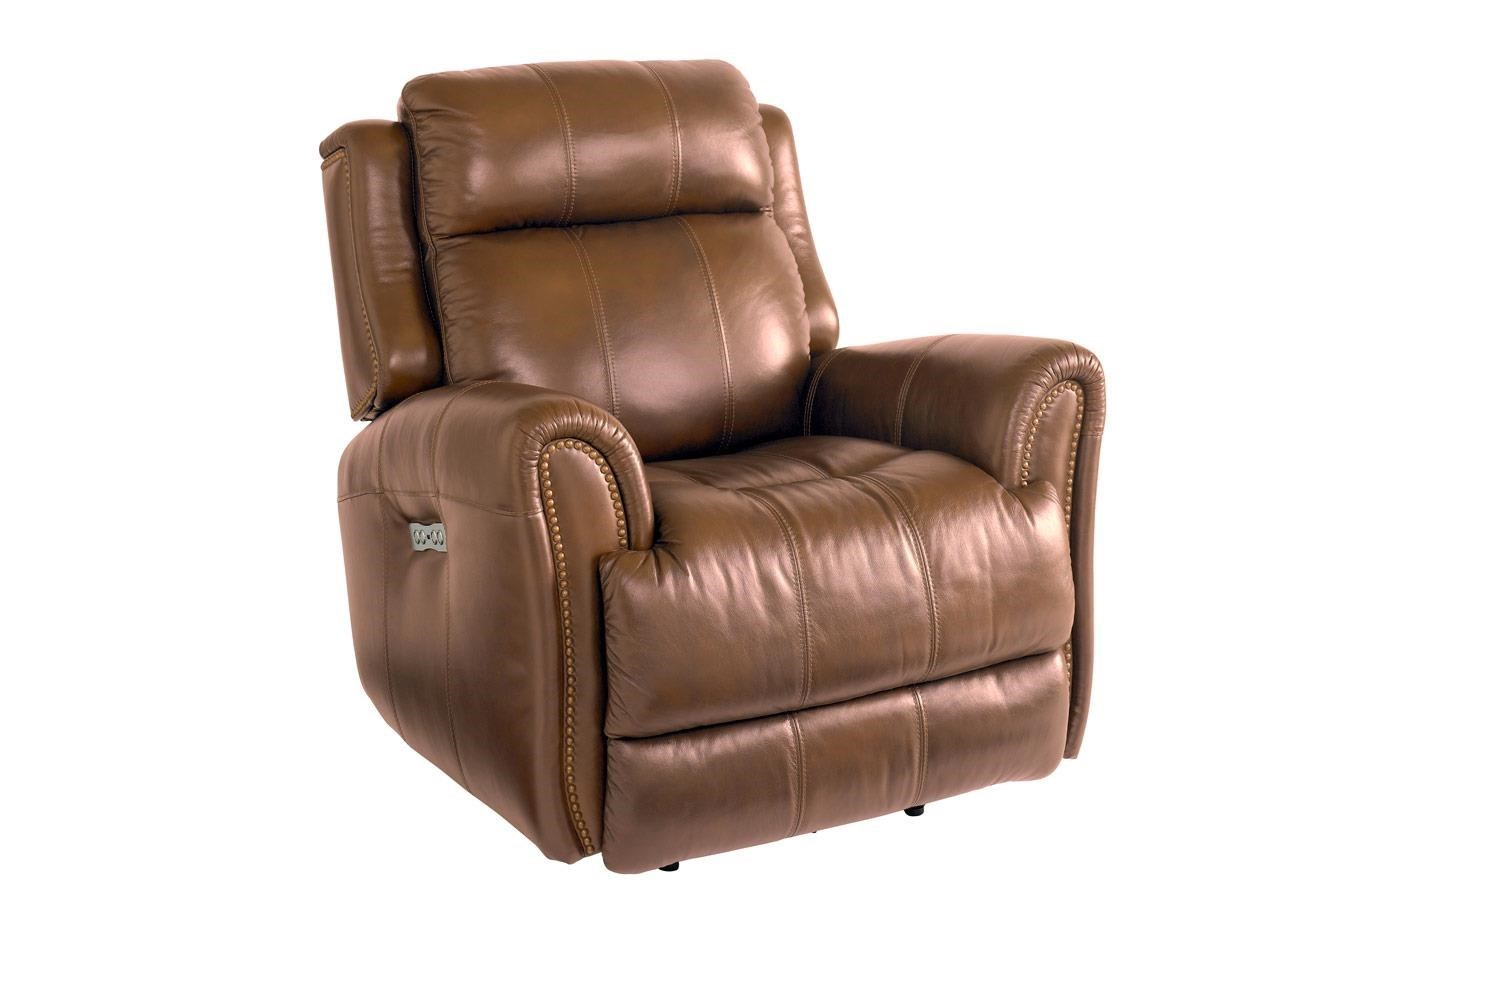 Bassett Marquee Umber Leather Power Wallsaver Recliner with Power Headrest(color may differ from image) - Great American Home Store - Three Way Recliners  sc 1 st  Great American Home Store & Bassett Marquee Umber Leather Power Wallsaver Recliner with Power ... islam-shia.org